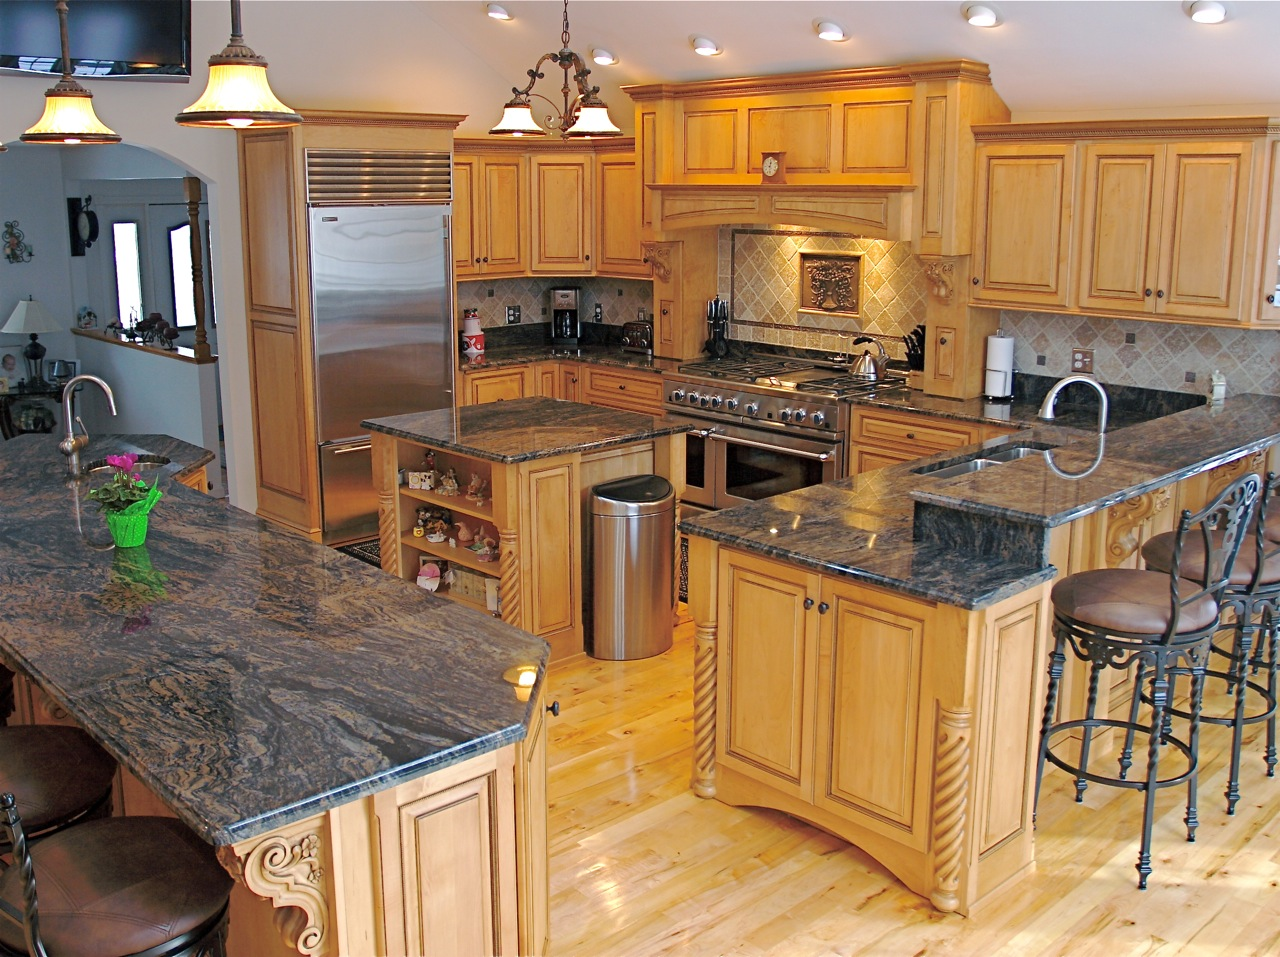 granite kitchen designs photo - 3